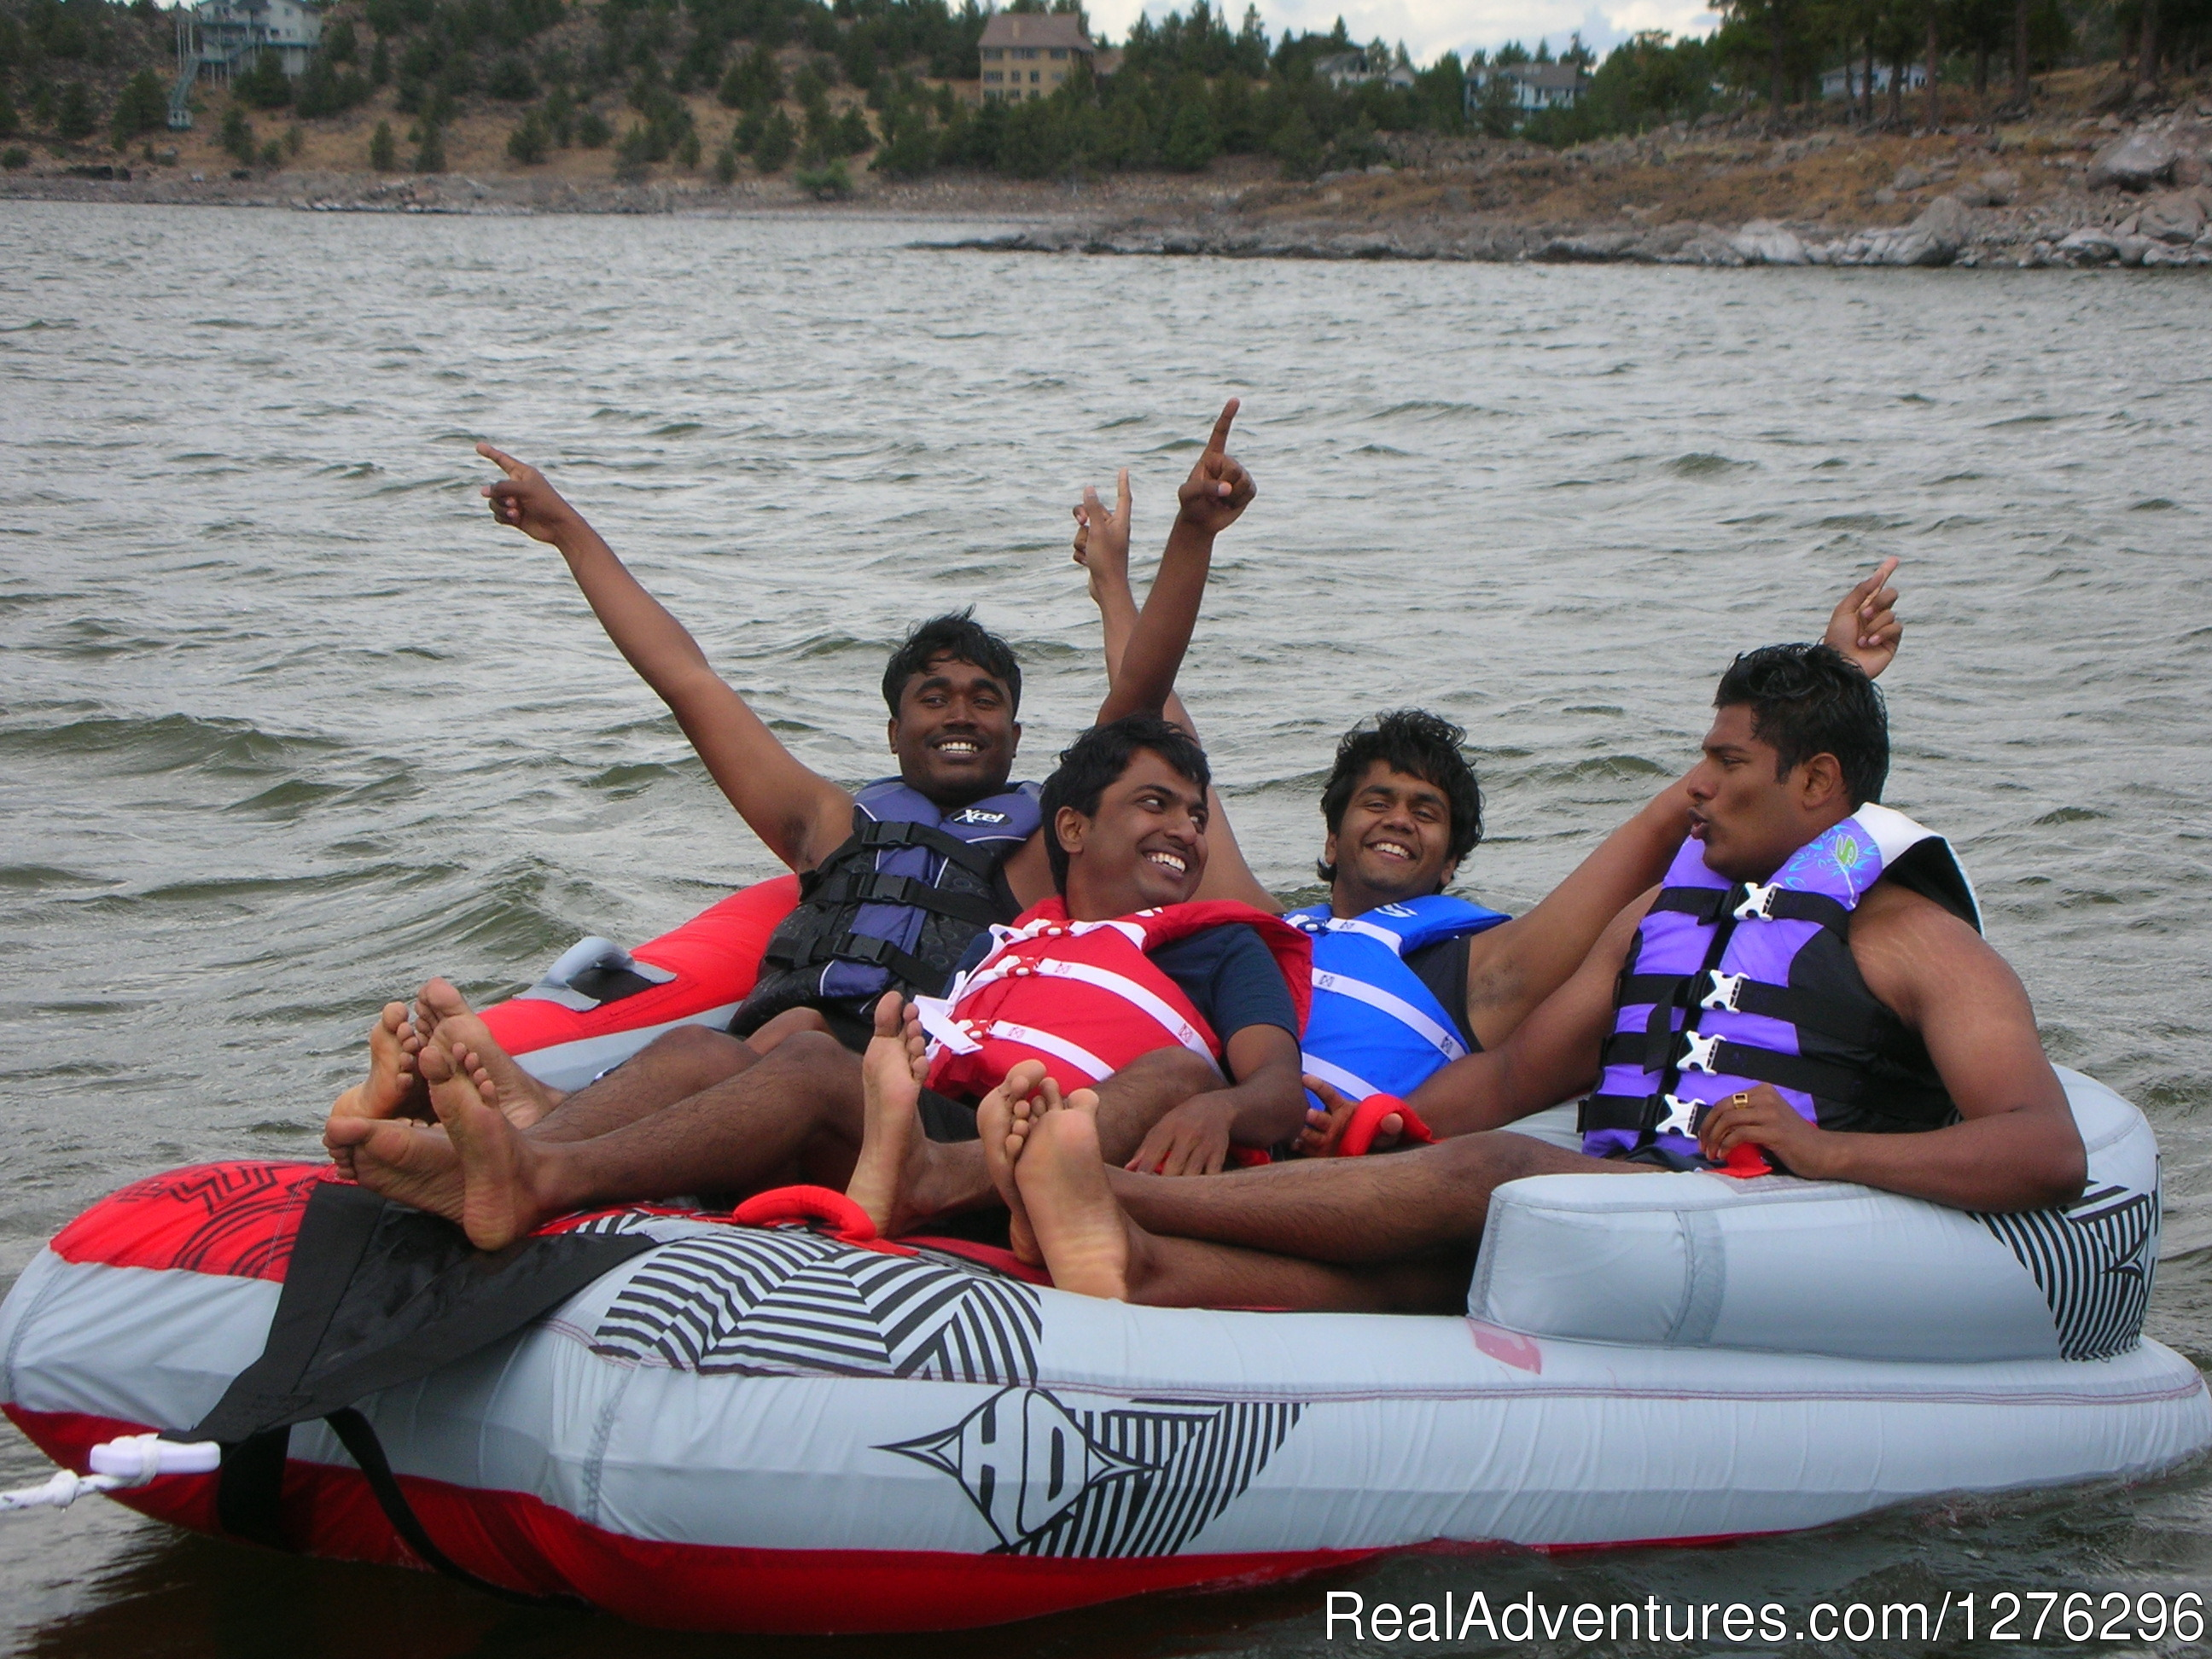 Boating Tours Weed California Scenic Cruises Boat Tours